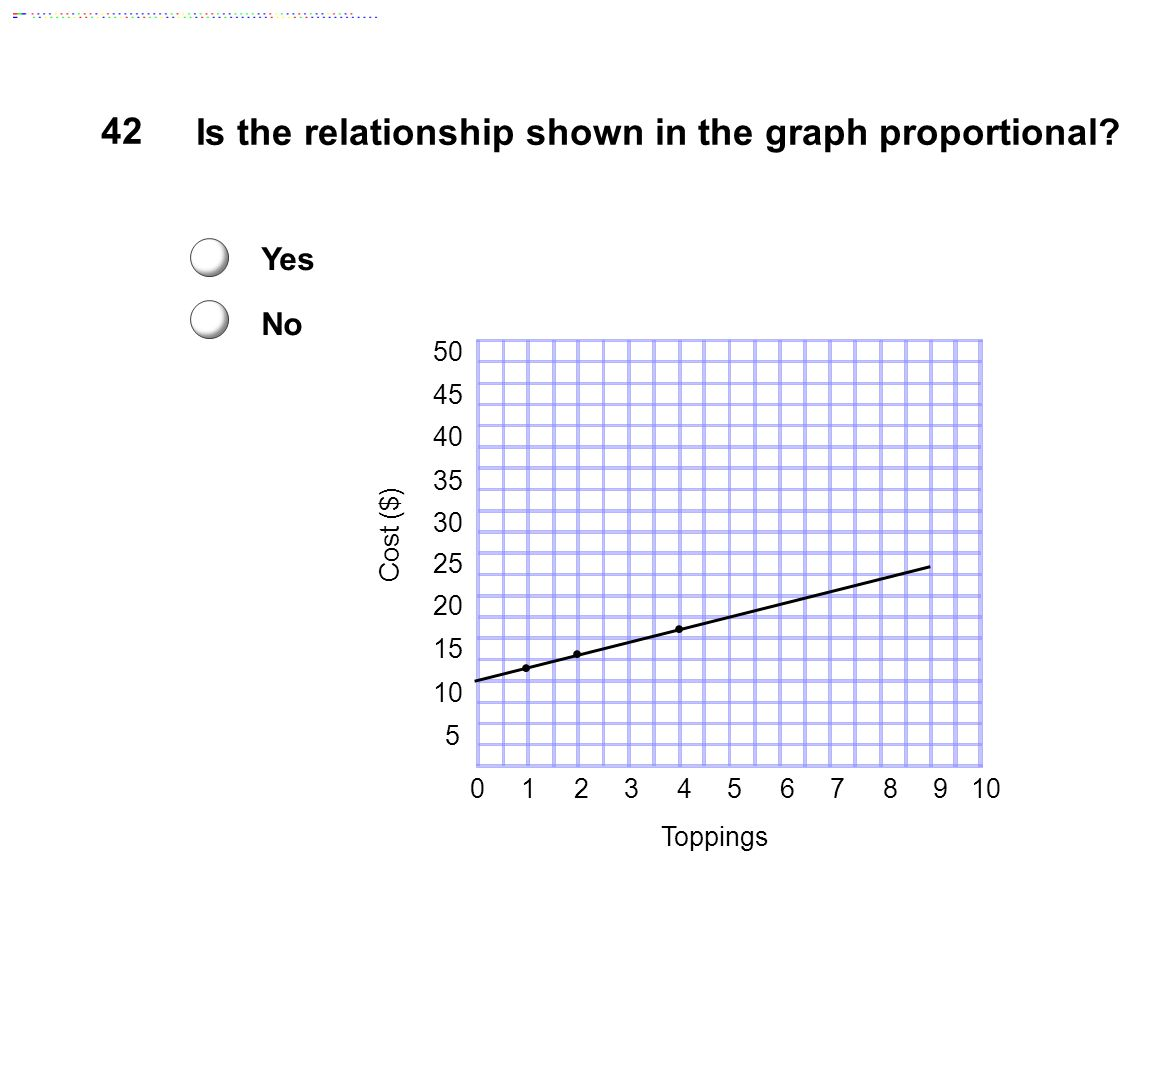 Toppings Cost ($) 0 1 2 3 4 5 6 7 8 9 10 5 10 15 20 25 30 35 40 45 50 42 Is the relationship shown in the graph proportional? Yes No